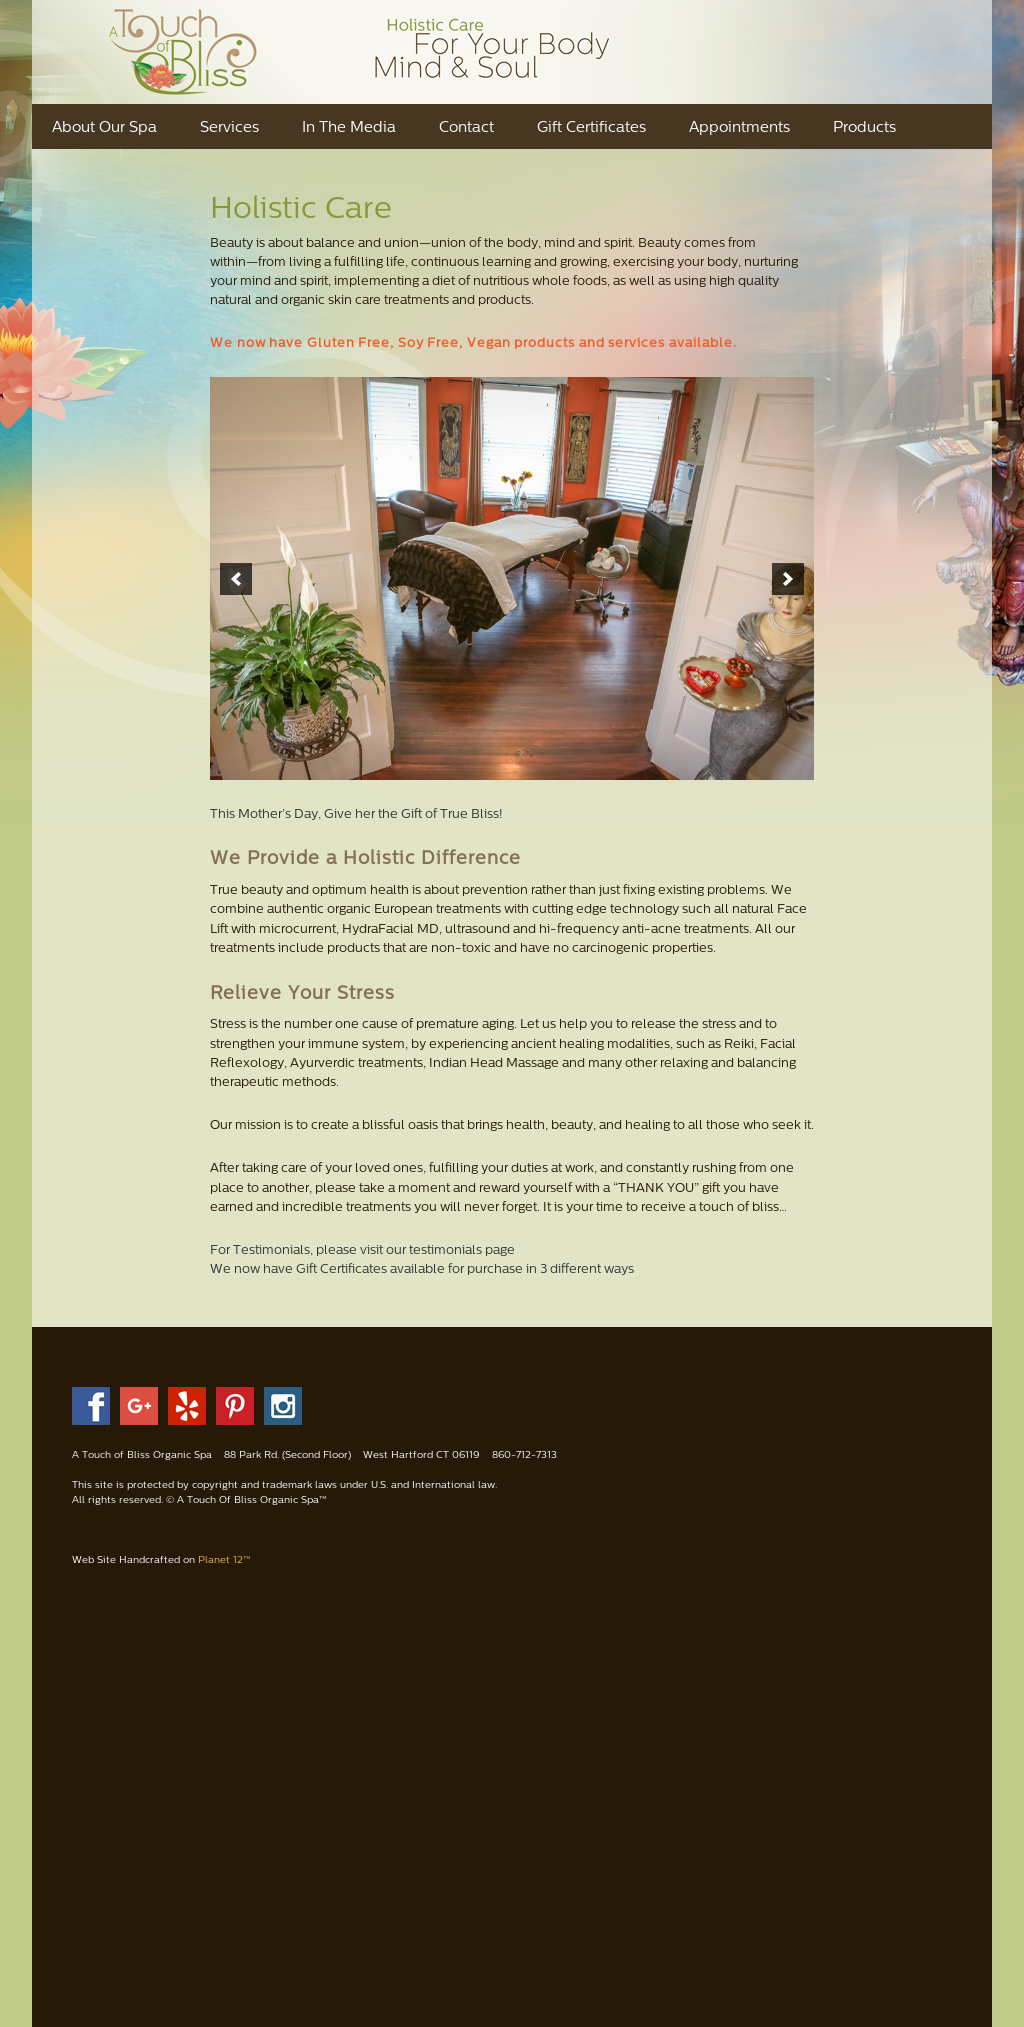 A Touch Of Bliss Organic Spa Competitors, Revenue and Employees - Owler Company Profile